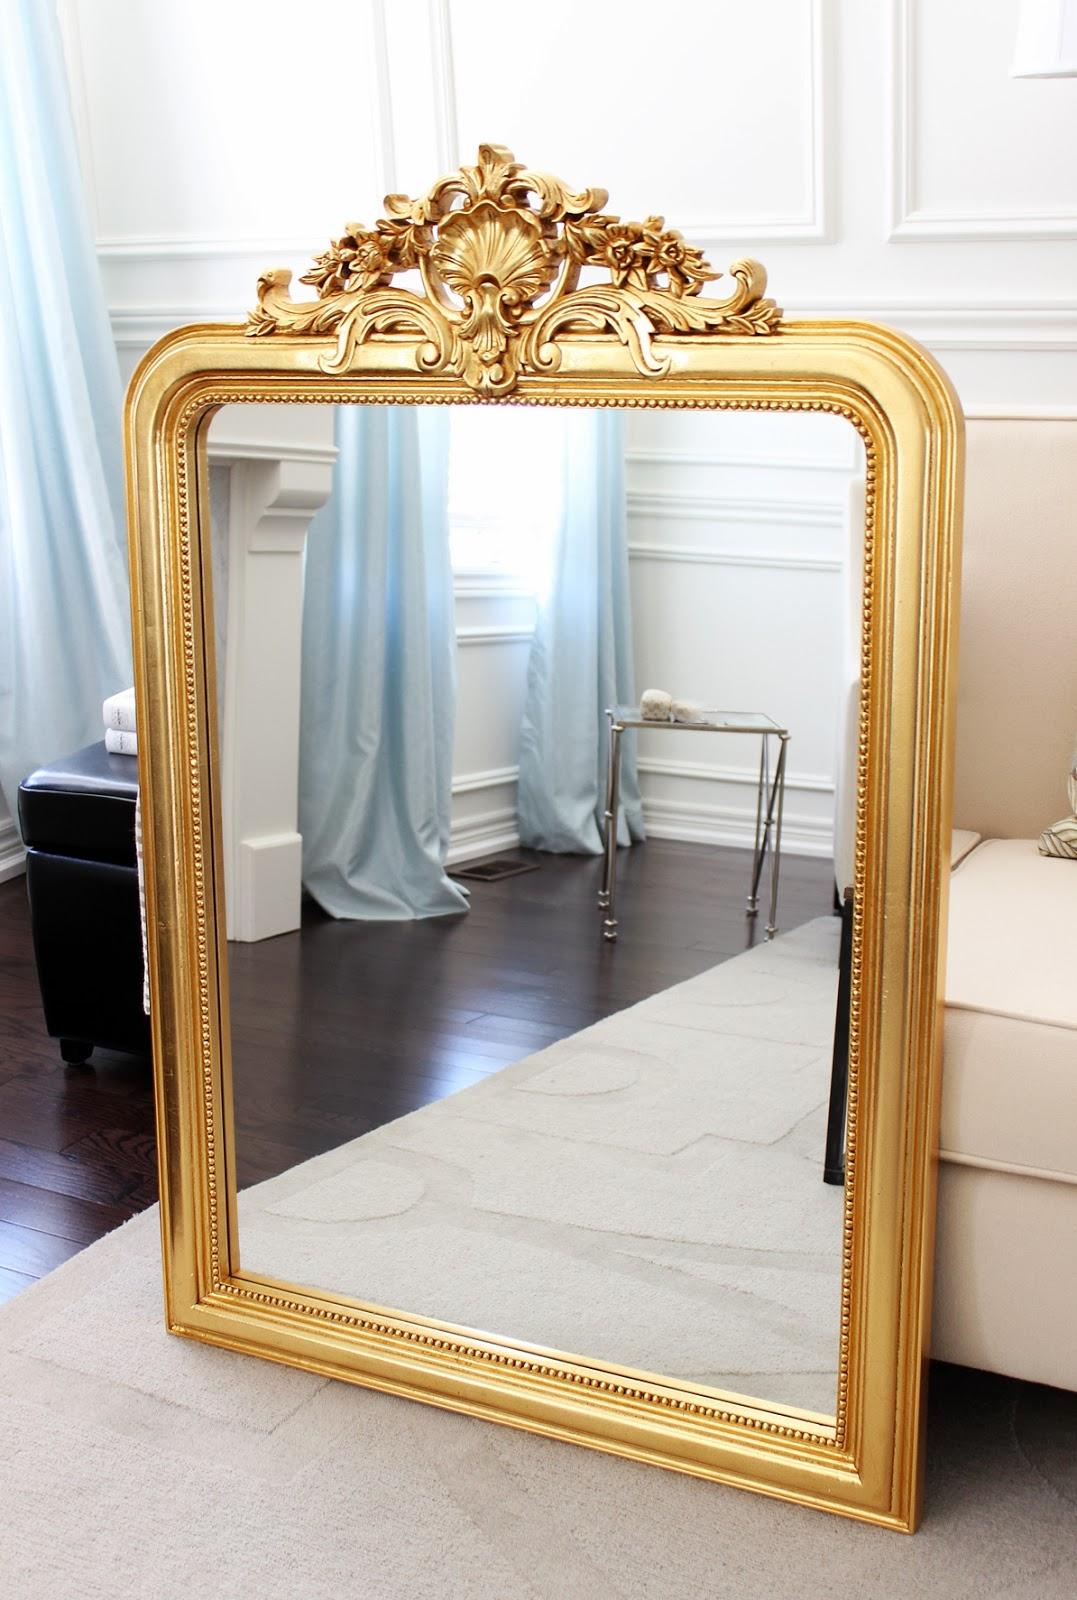 Antique Reproduction Louis Philippe Gilt Mirror Antique French Inside French Mirrors Reproduction (Image 4 of 15)